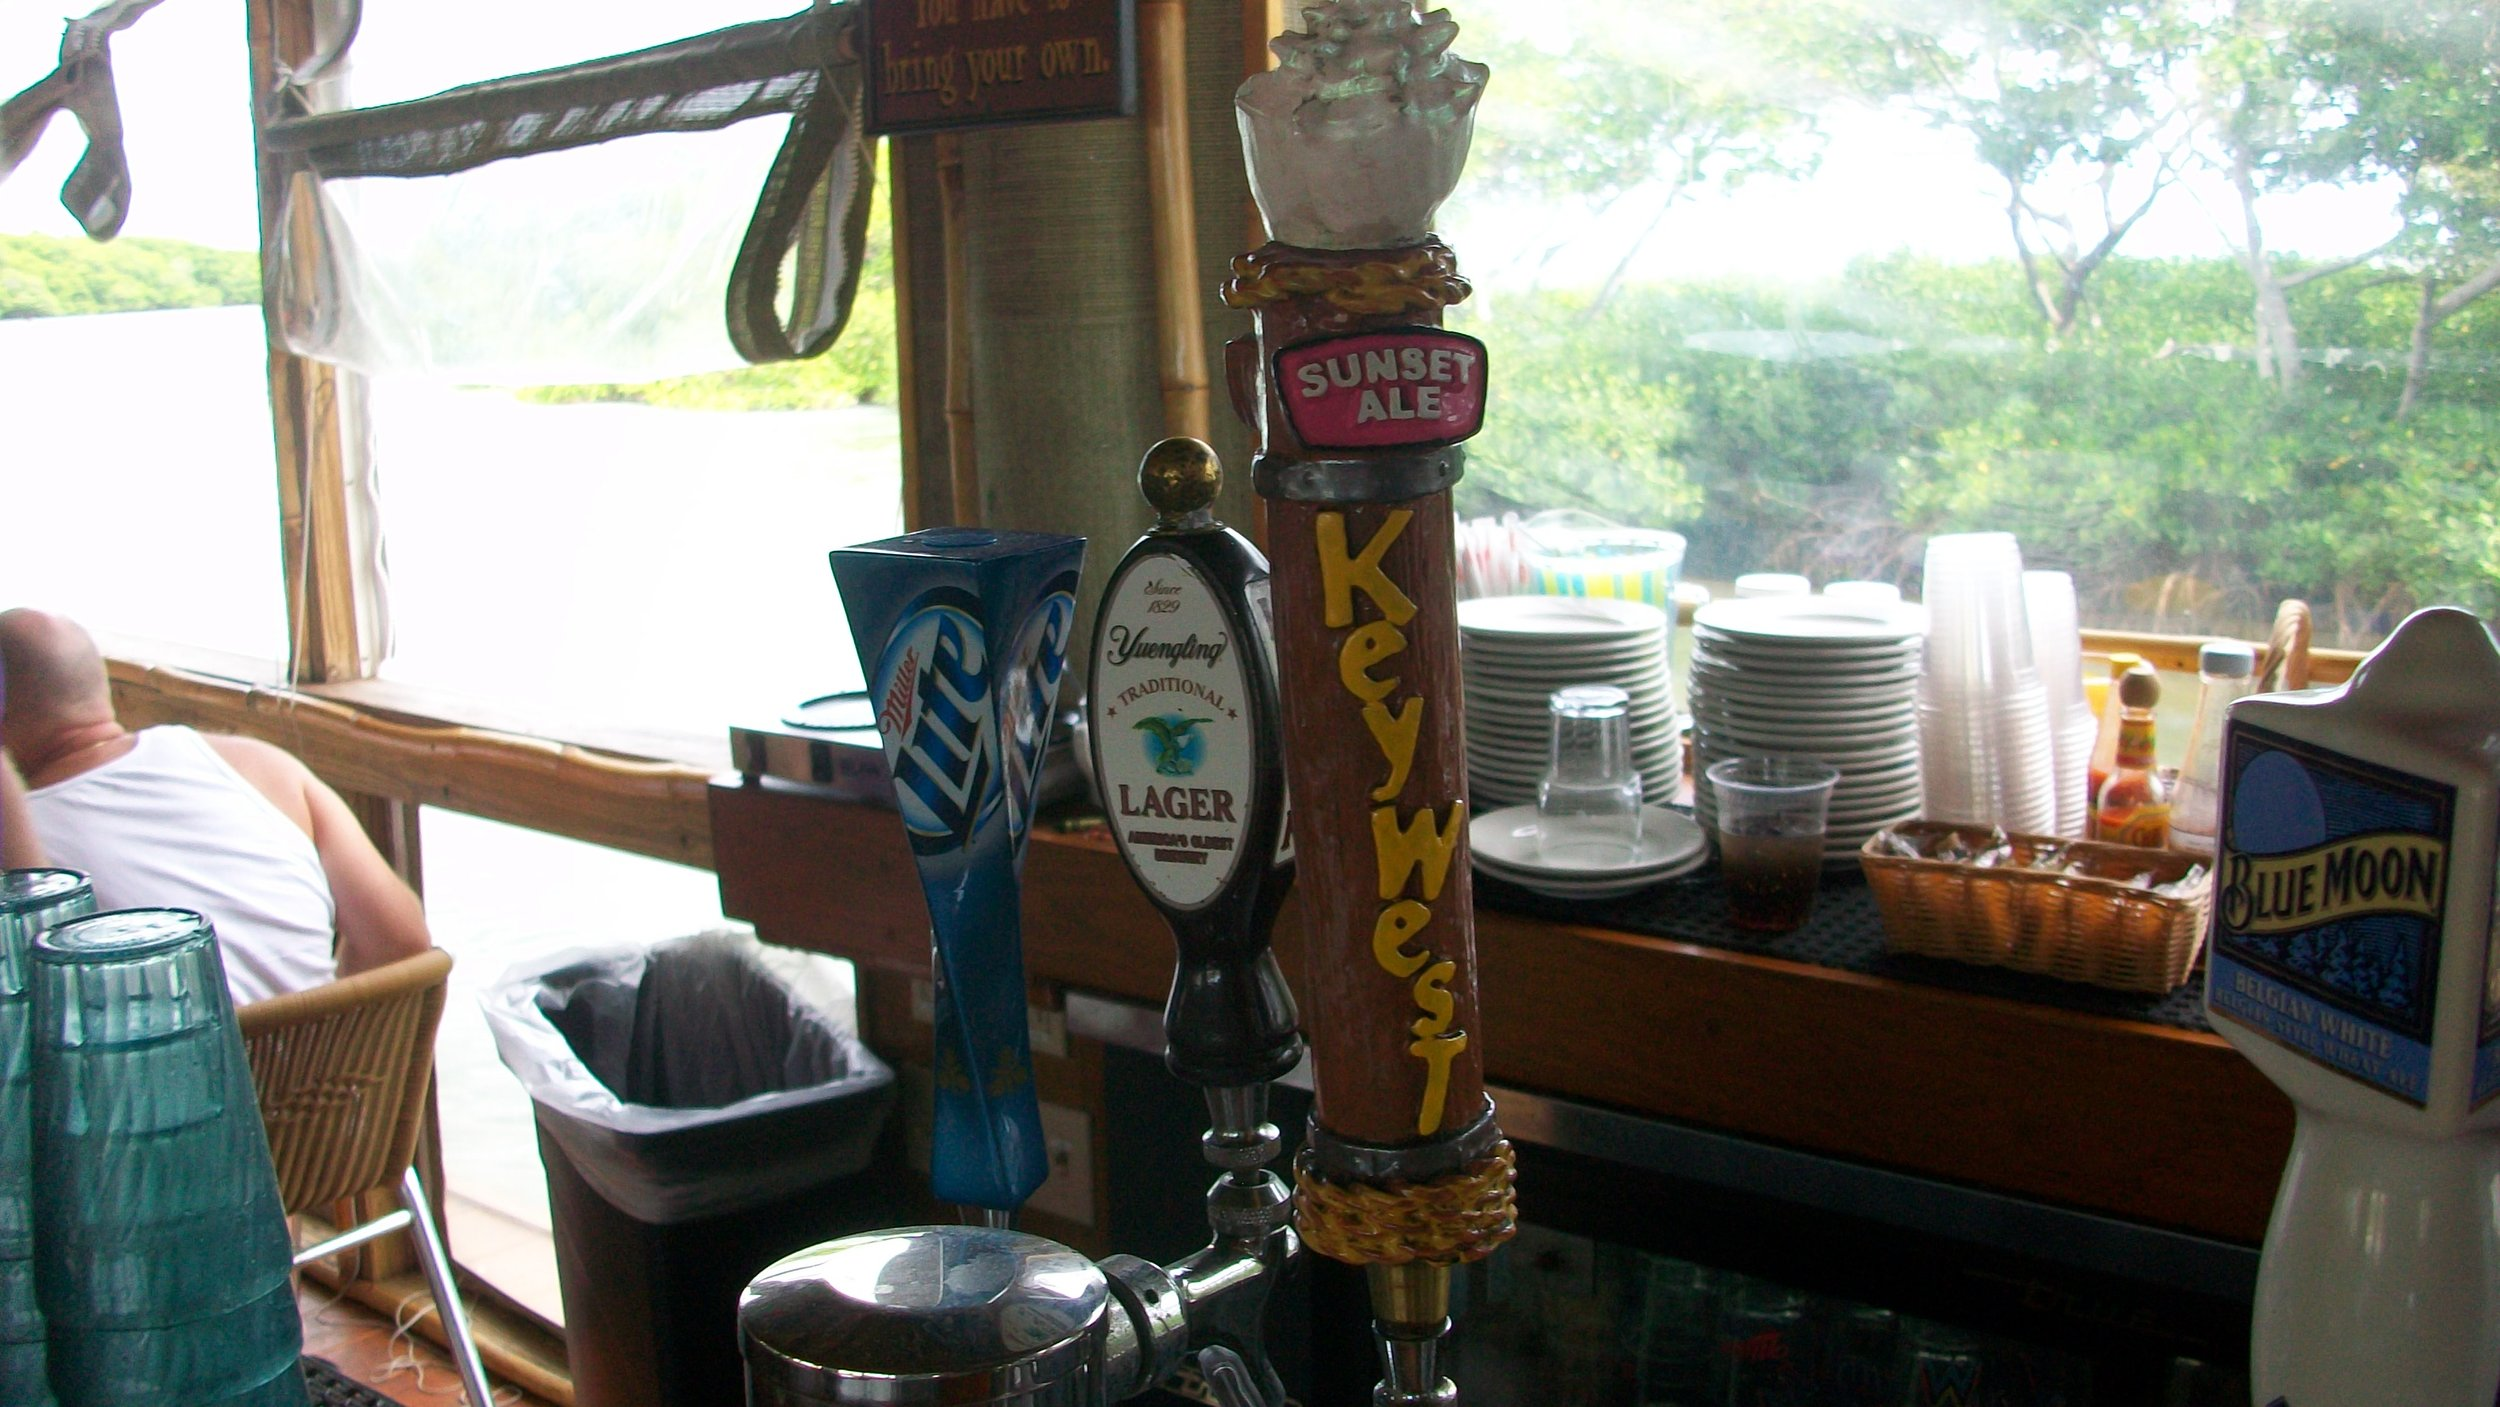 Island Grill Beer Tap